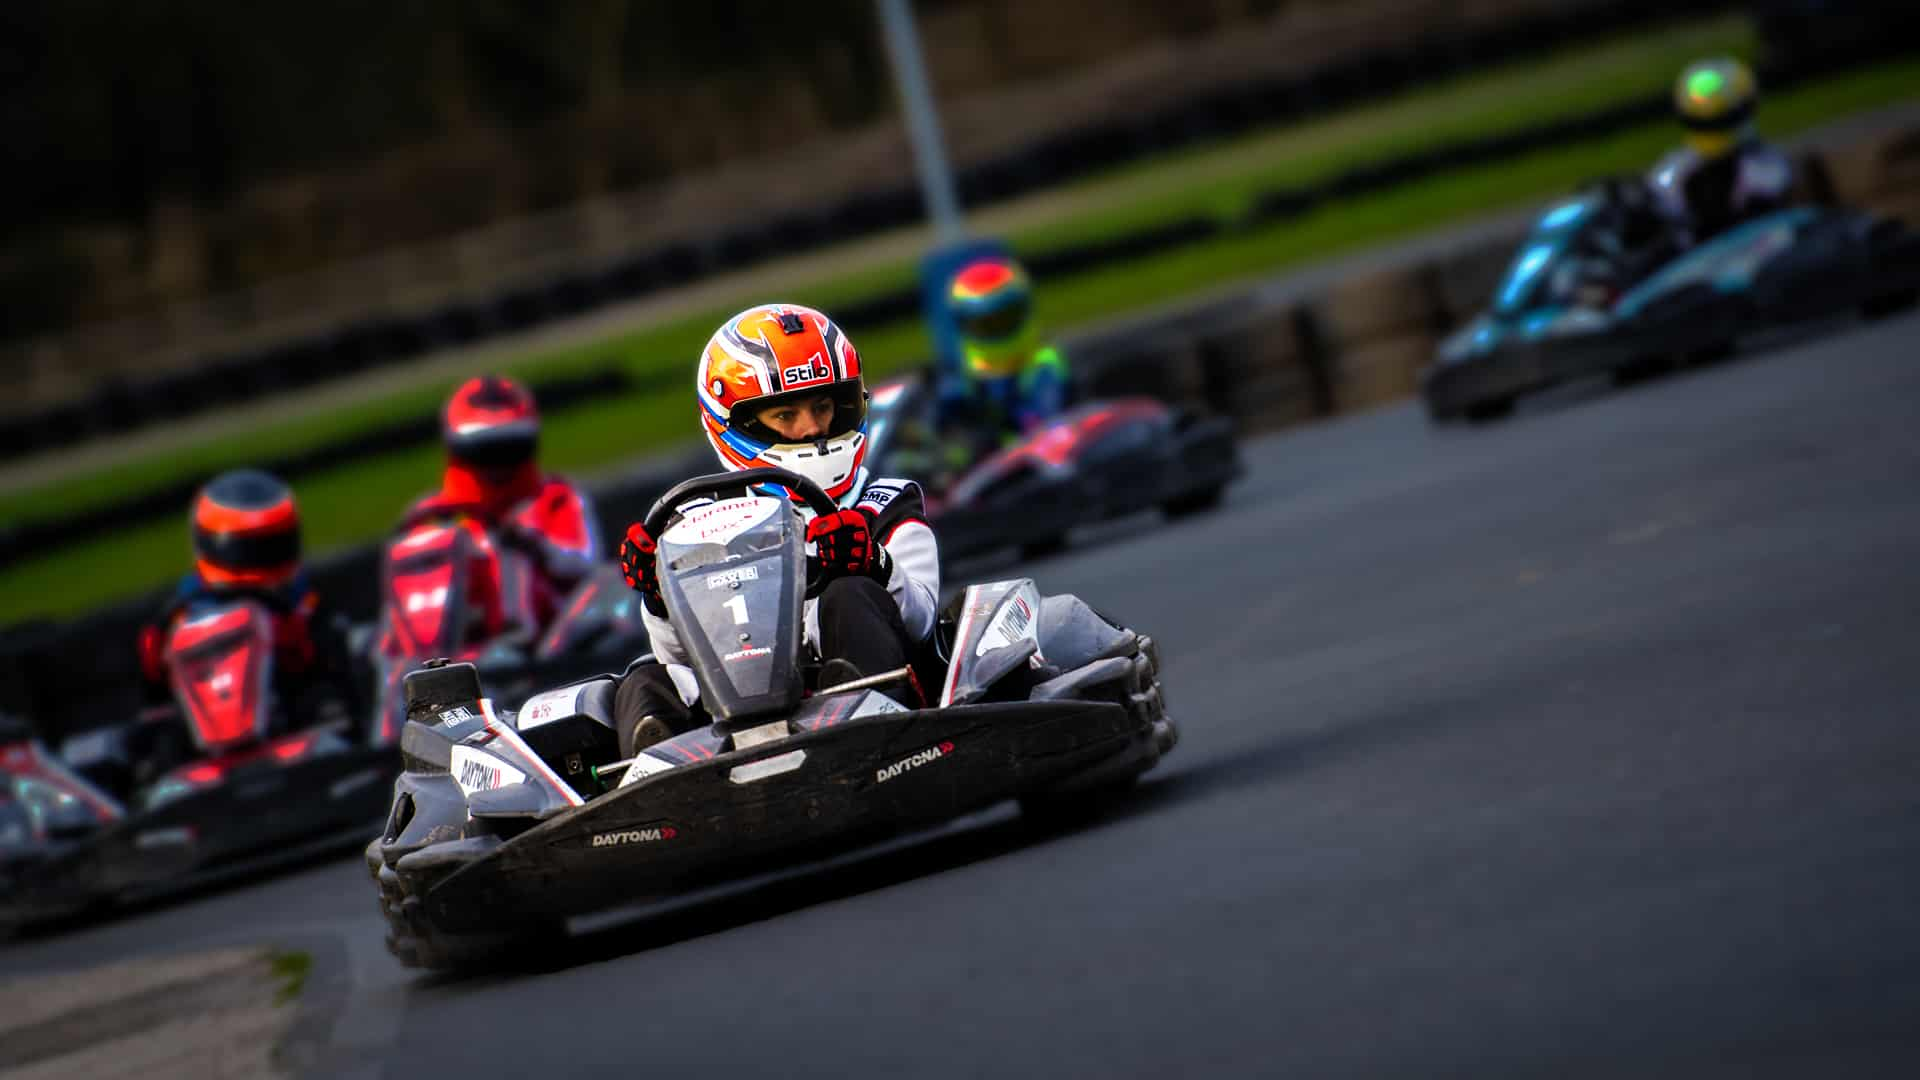 WHAT IS THE SODI WORLD SERIES?